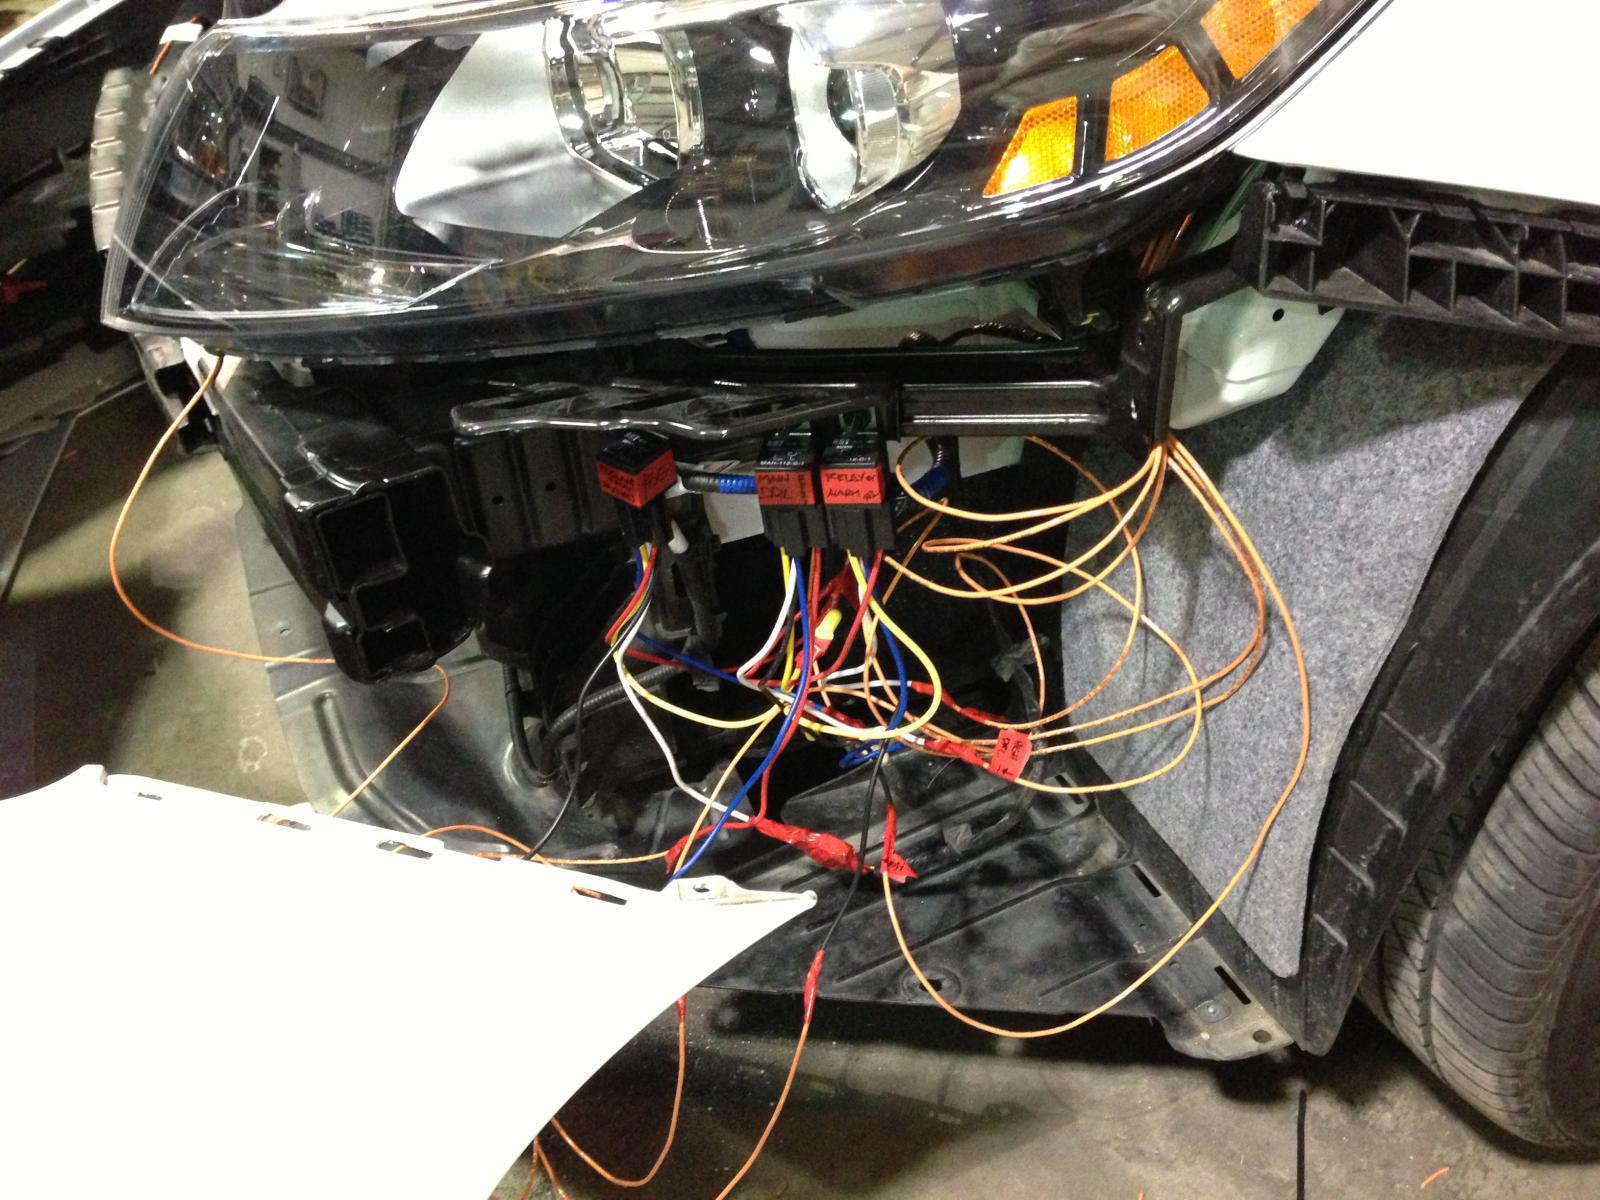 2011 Hyundai Sonata Fog Light Wiring Diagram Daily Update 2476 Smartlabs Dimmer Switch Opinions About Rh Voterid Co